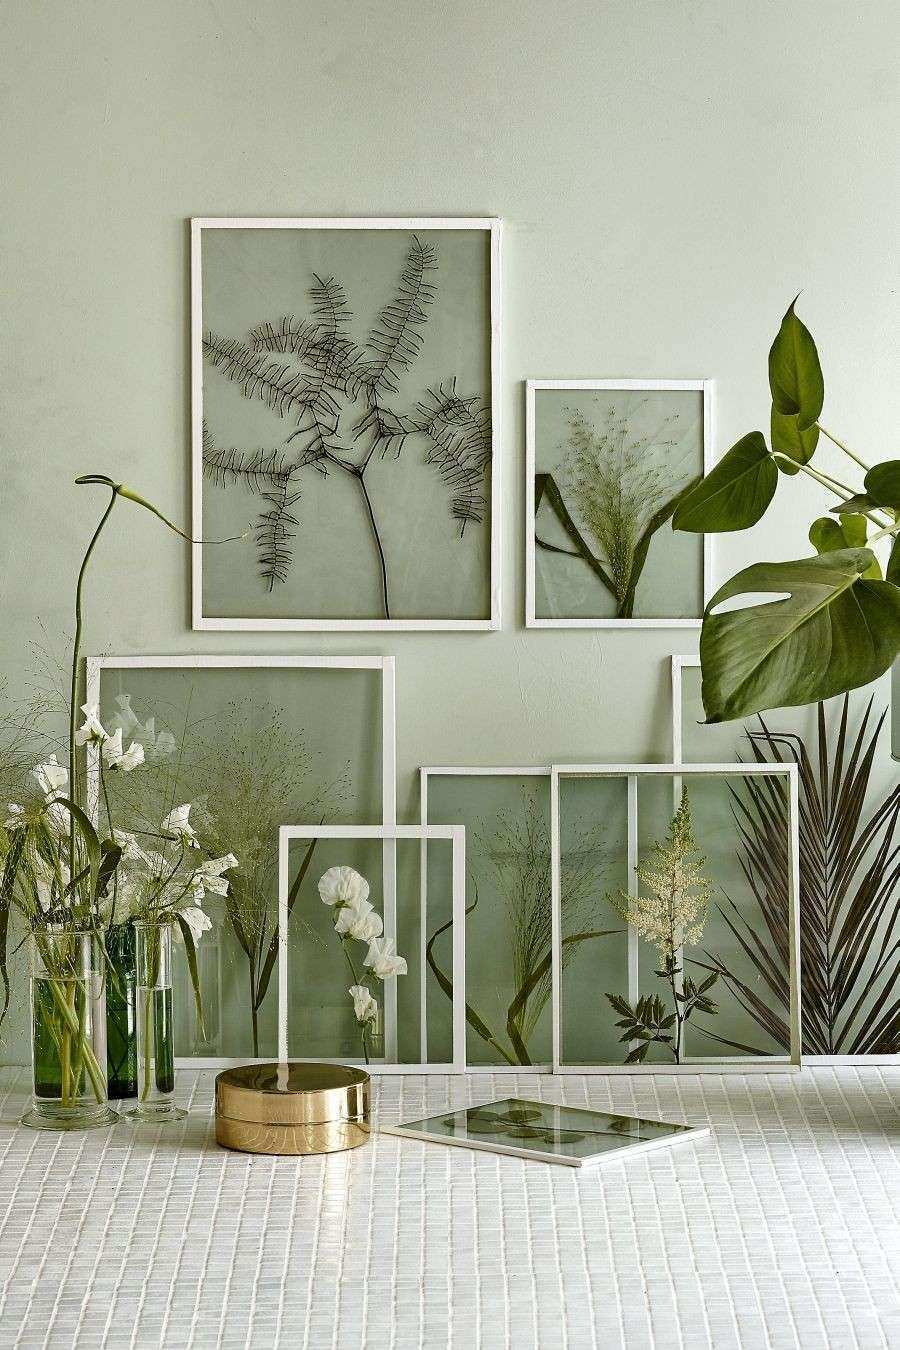 Framing dried plants and flowers in clear glass frames